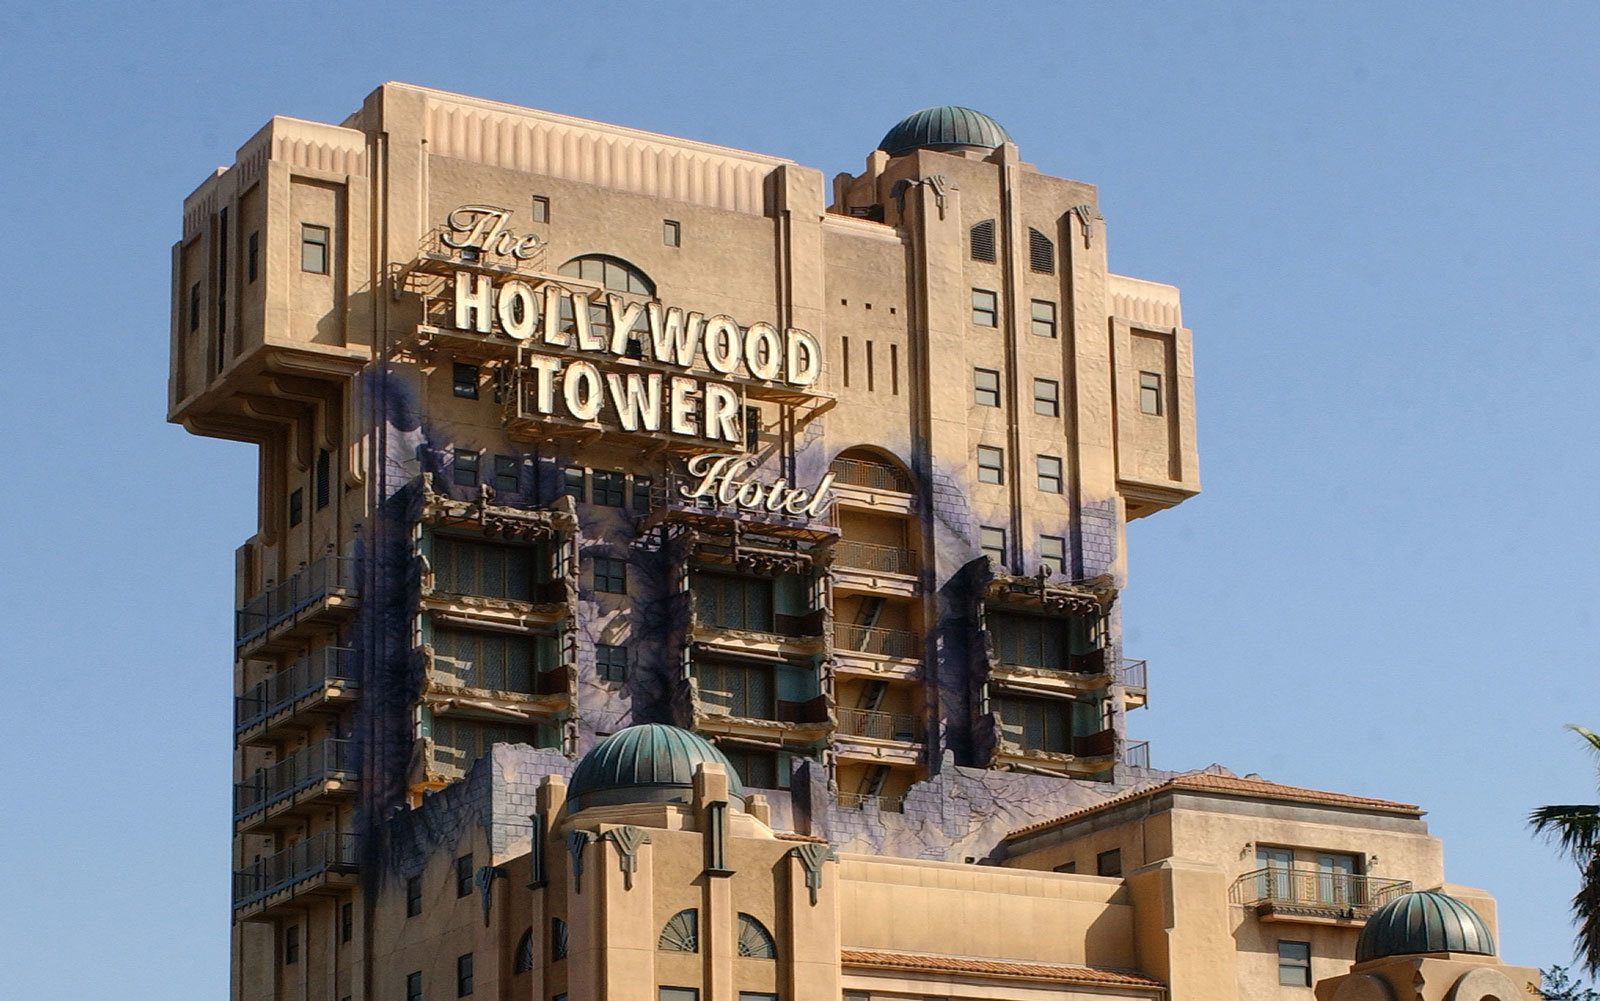 Disney's California Adventure Park will close Tower of Terror on January 2